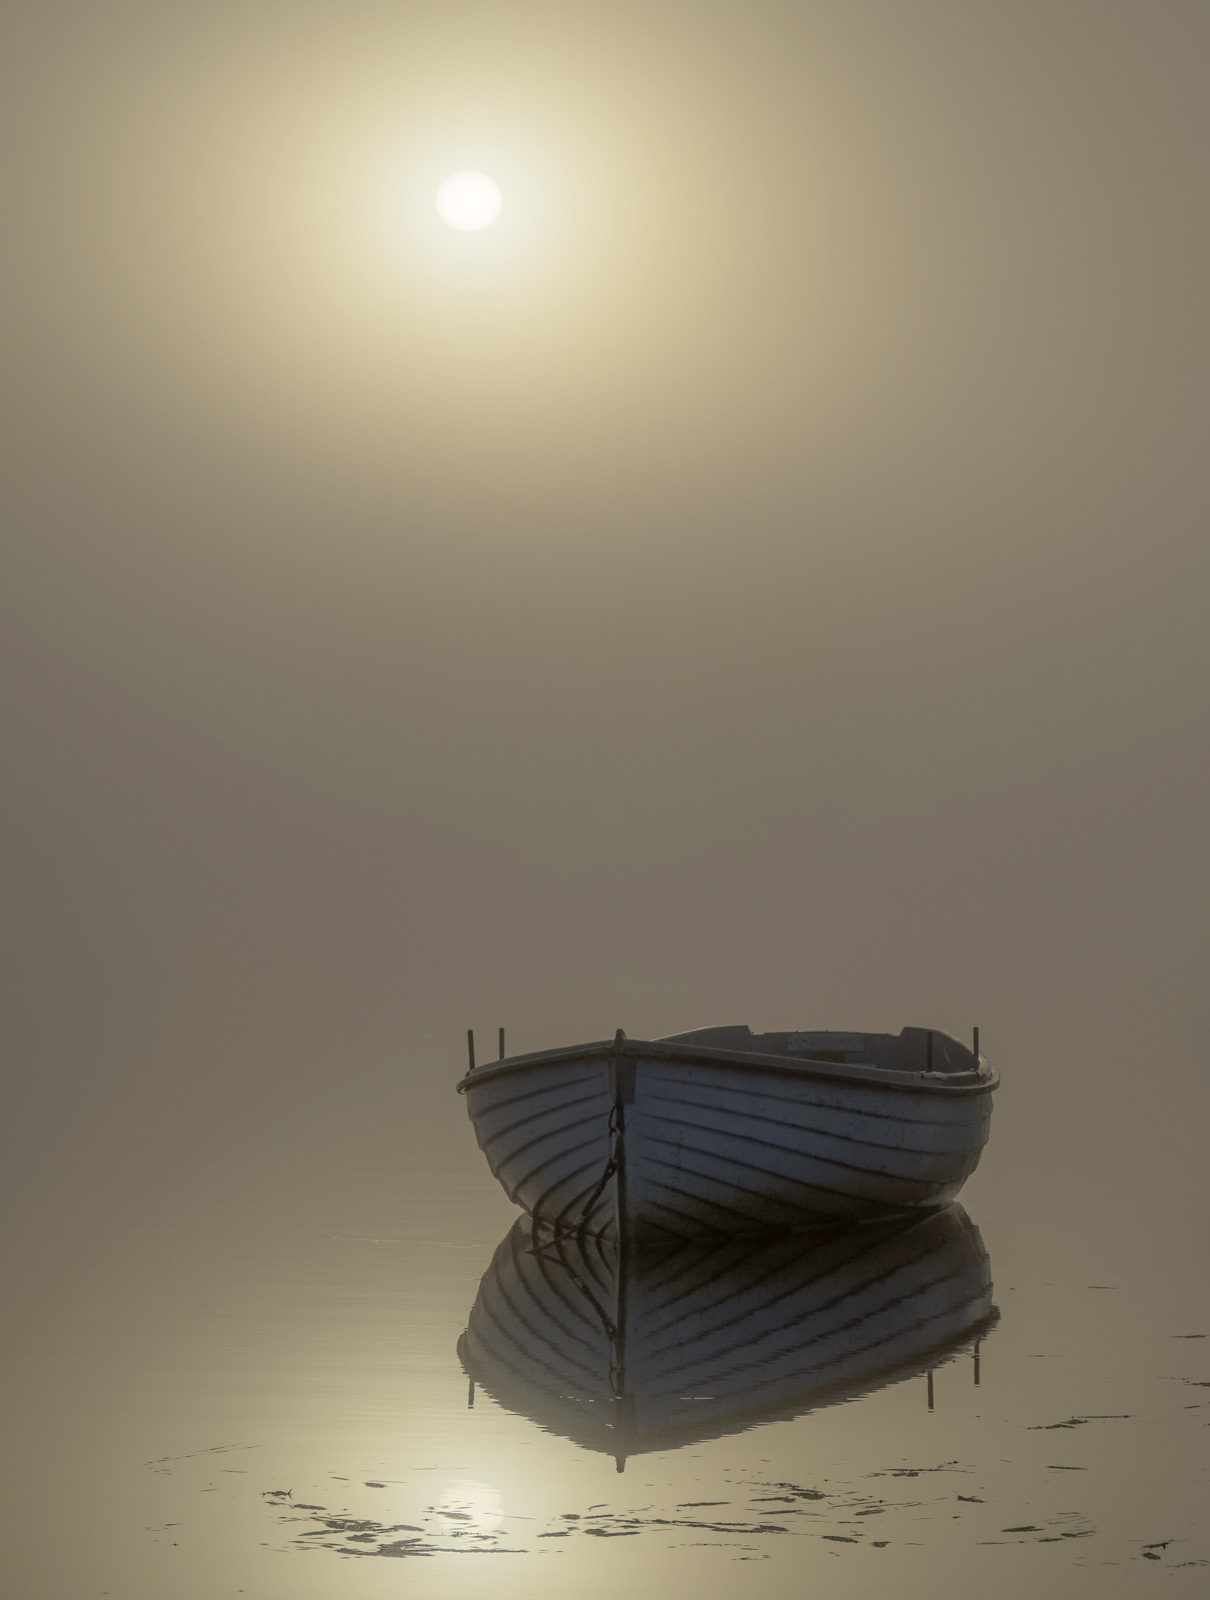 Rusky Gold 3, Loch Rusky, Trossachs, Scotland, pair, pale blue, rowing boats, wood, mirror, ethereal, reflection, mist, , photo